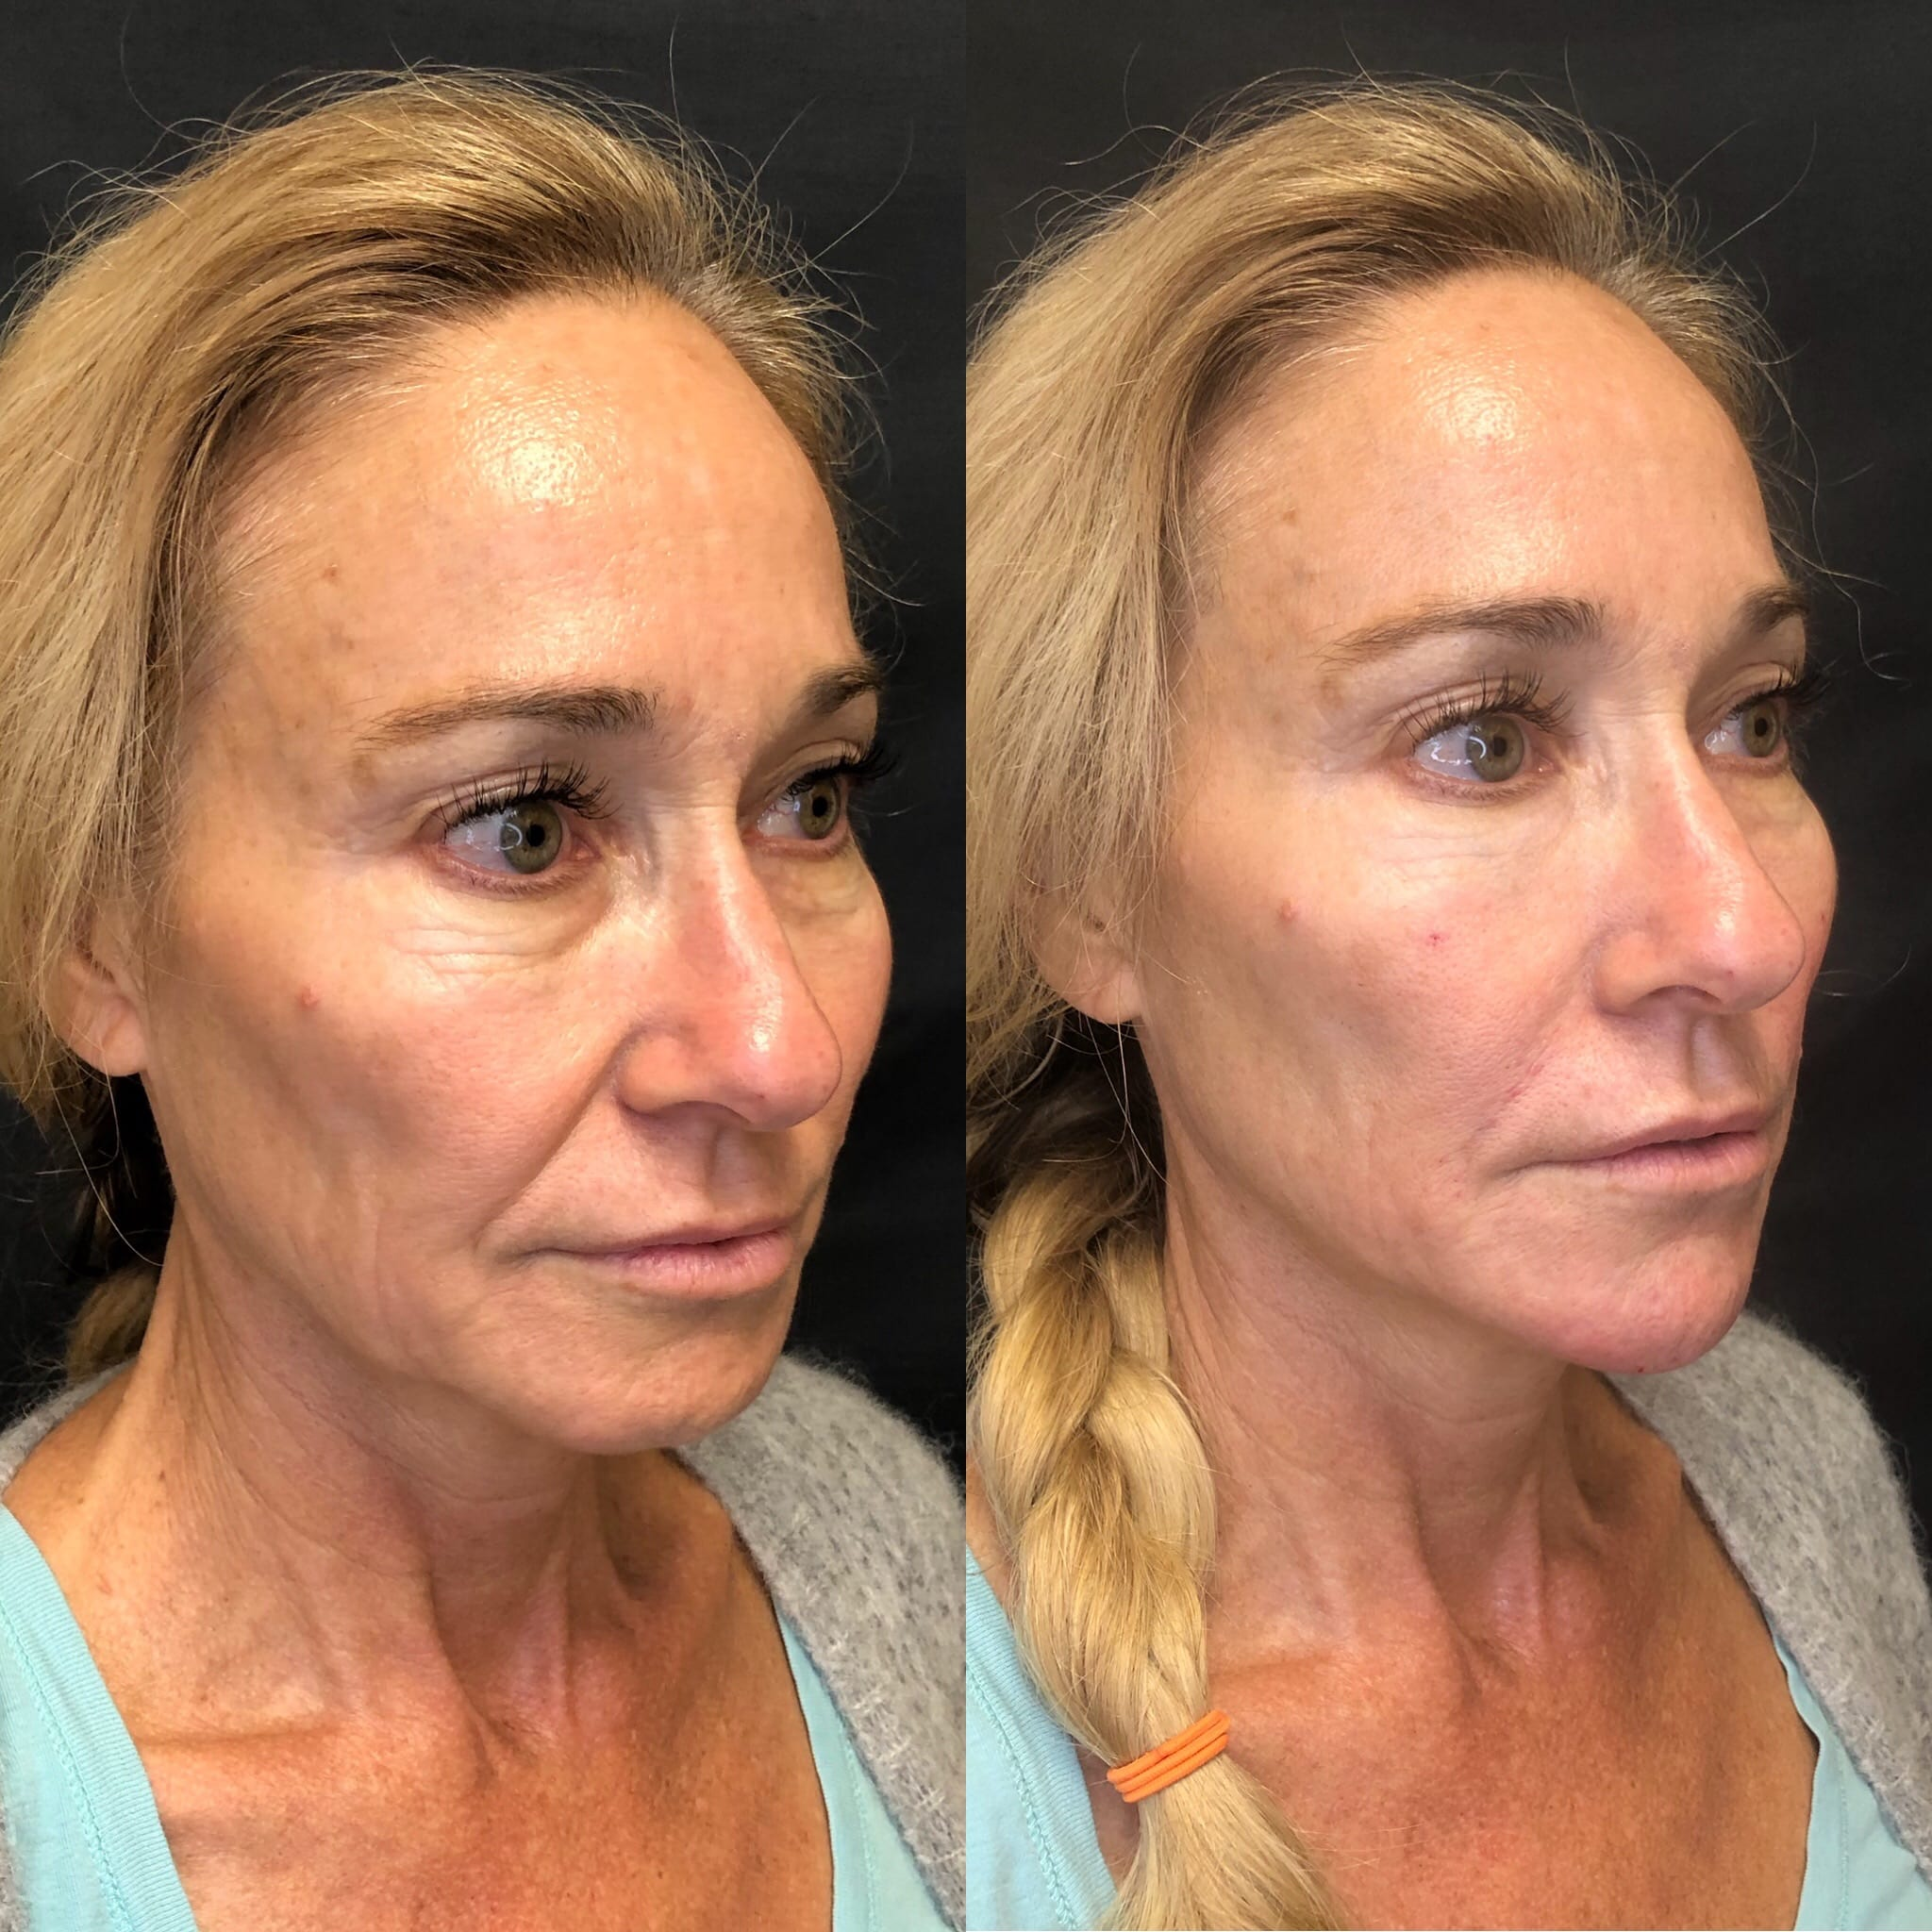 58 y/o Caucasian F immediately after injecting 2 syringes of voluma to her chin and jawline for chin reshaping and definition.